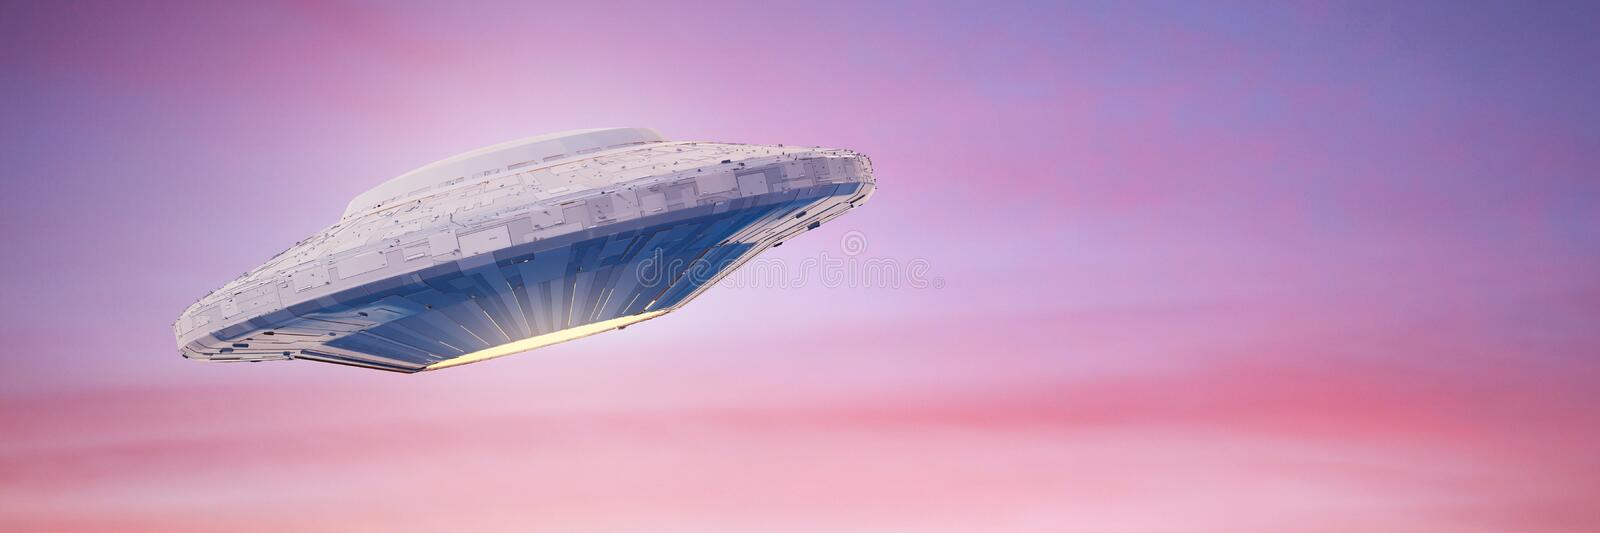 UFO, science fiction scene with fast alien spaceship, extraterrestrial visitors in flying saucer 3d space rendering banner stock photos